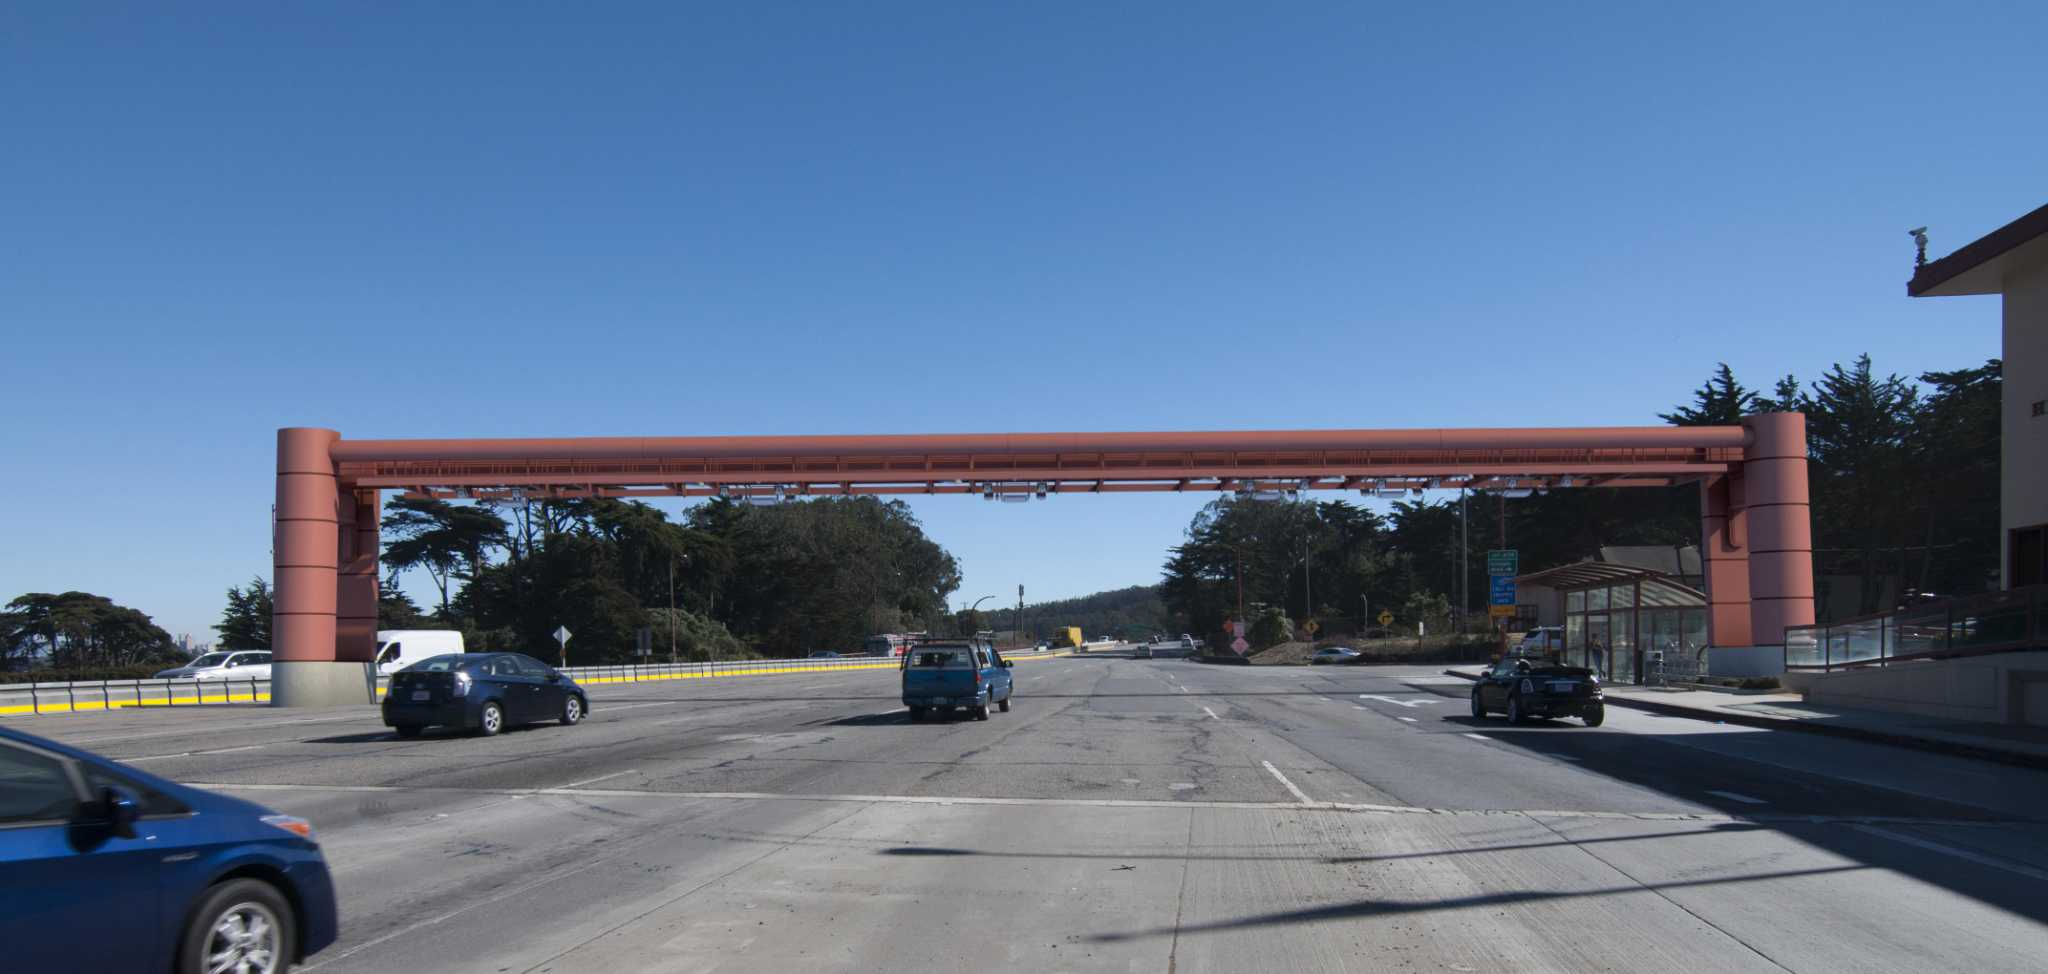 Designs rolled out for Golden Gate Bridge's future toll-taking structure | San Francisco Gate